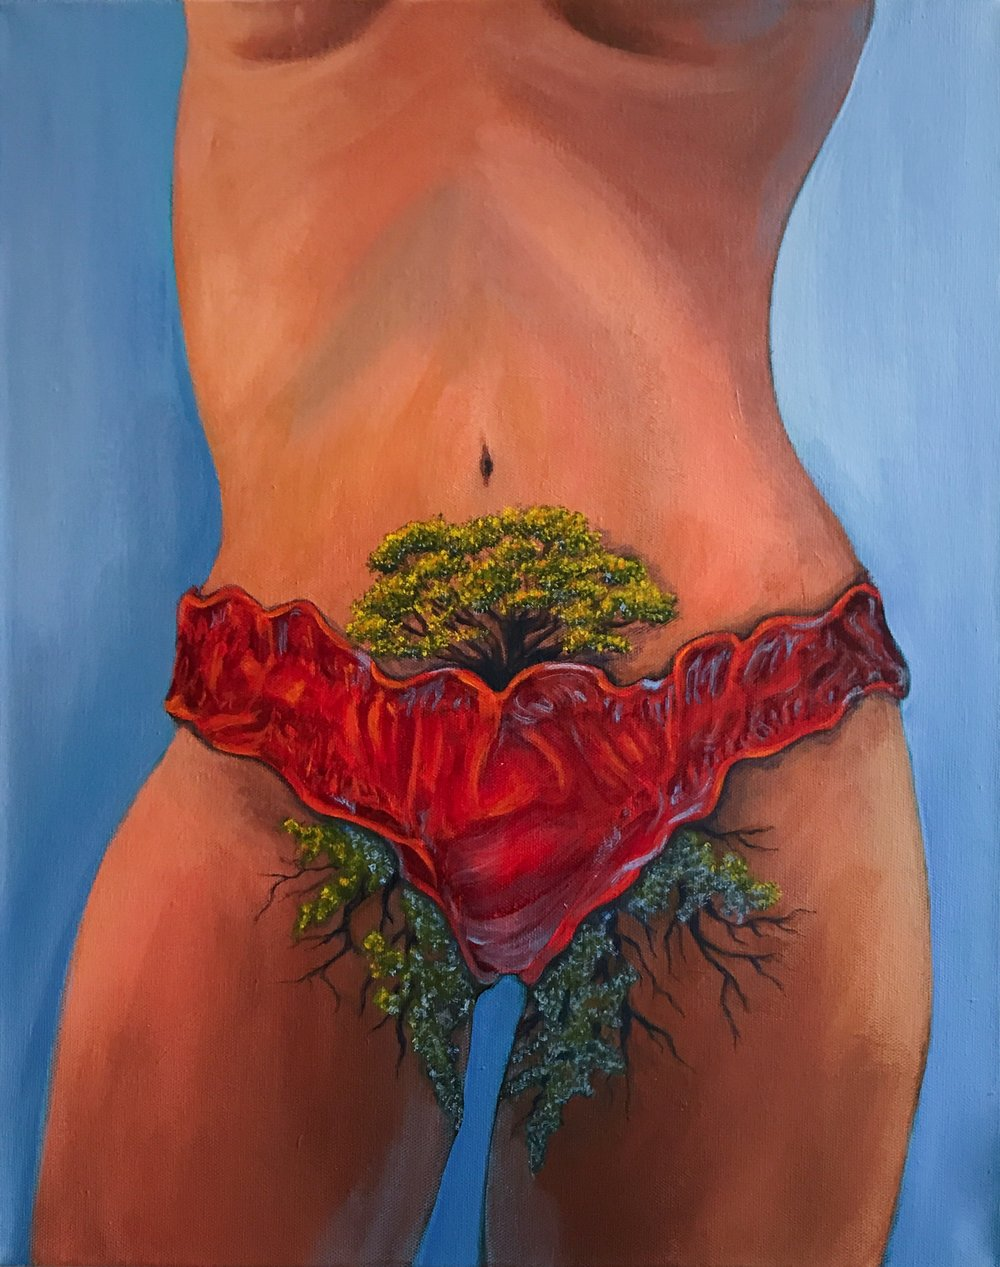 The Body Beautiful - Laura David and Tyler FureyReception: January 21 from 6-8PMOpen to public: January 21 (4-9PM) - January 22 (9-12PM)The Living Gallery Outpost246 E 4th St. New York, NY 10009